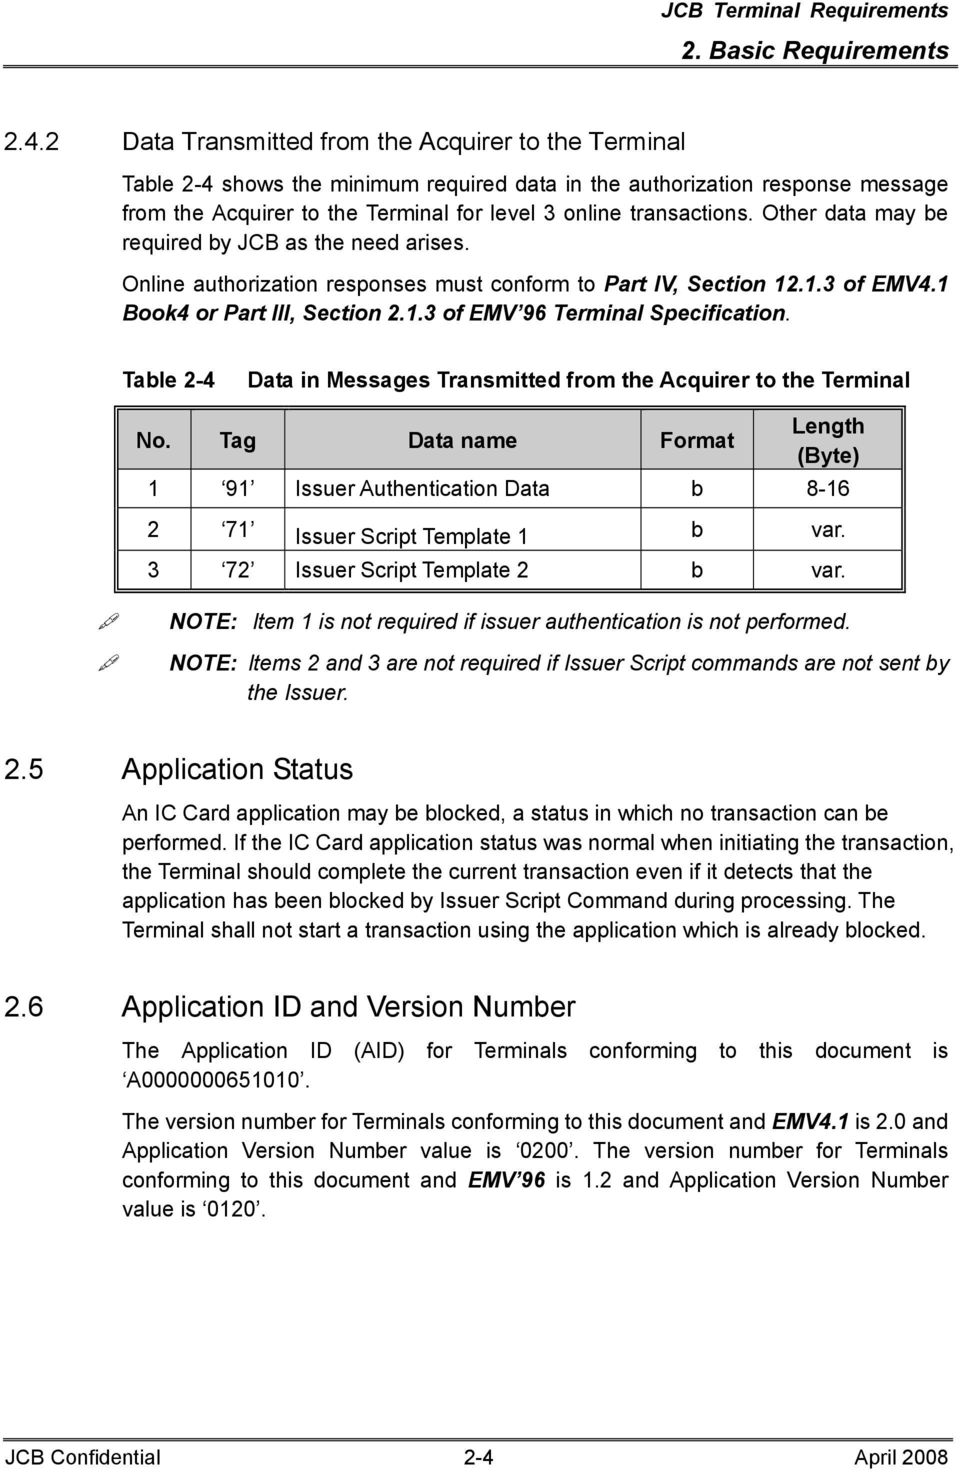 Other data may be required by JCB as the need arises. Online authorization responses must conform to Part IV, Section 12.1.3 of EMV4.1 Book4 or Part III, Section 2.1.3 of EMV 96 Terminal Specification.